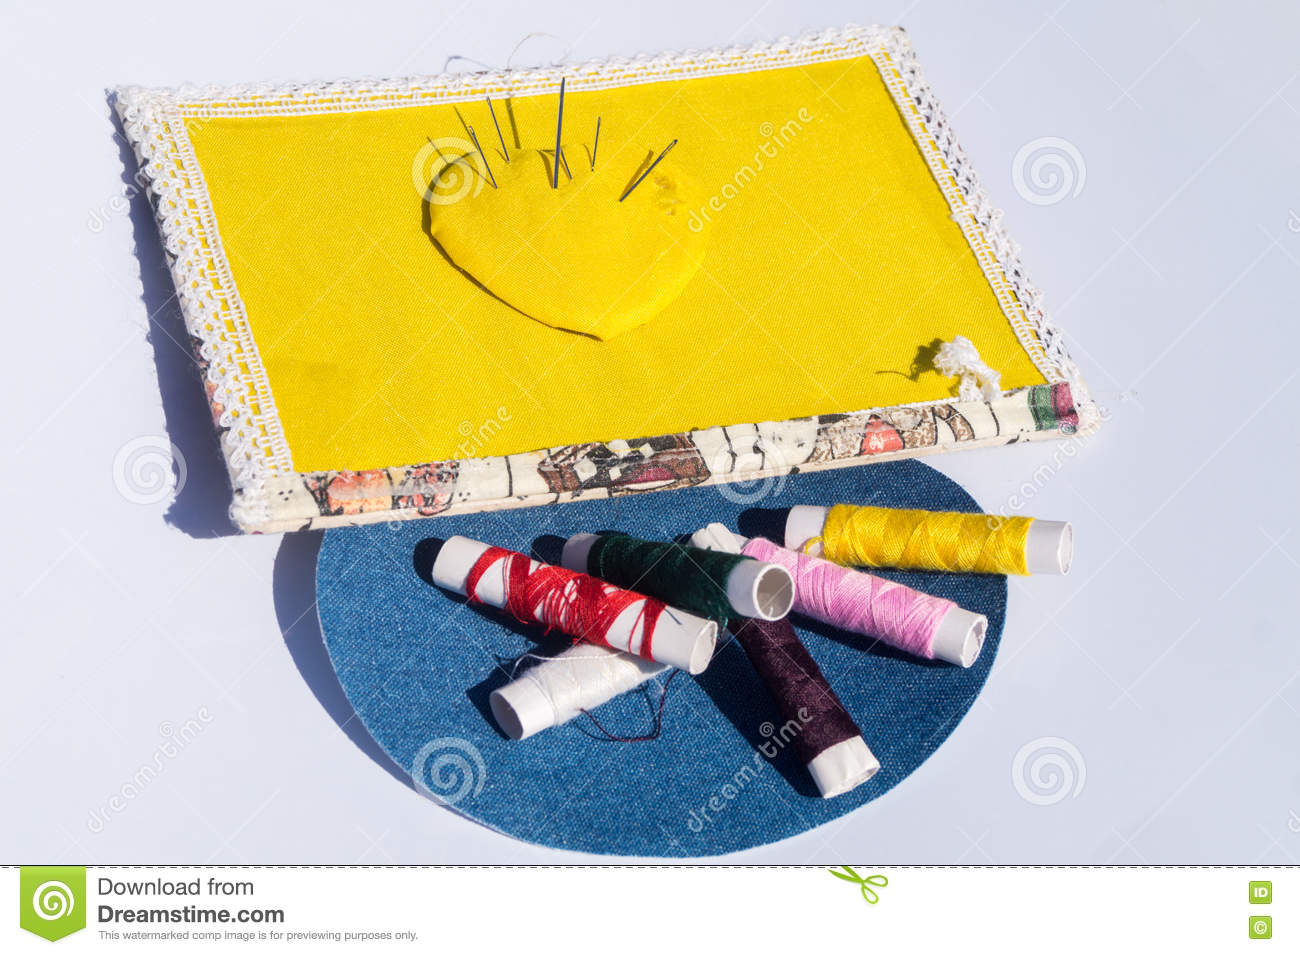 Needle, thread and scissors, sewing items